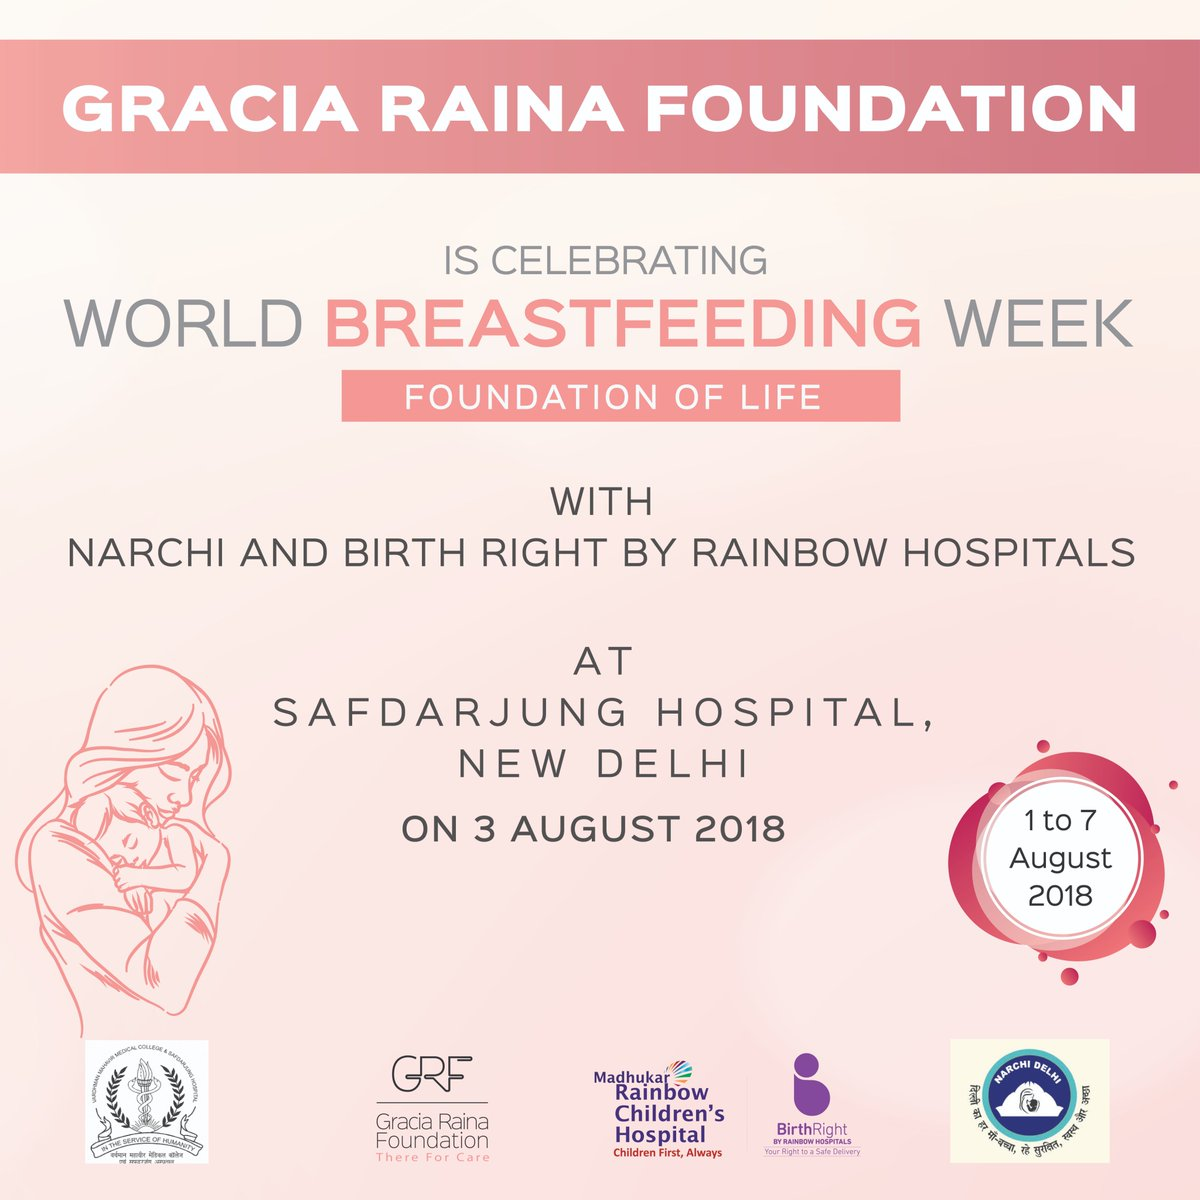 Gracia Raina Foundation has been consistently supporting new mothers and their children through the various initiatives, taking this further GRF is celebrating #breastfeedingweek with newly delivered mothers in IPD of @SJHDELHI one of the Indias Largest Hospital.